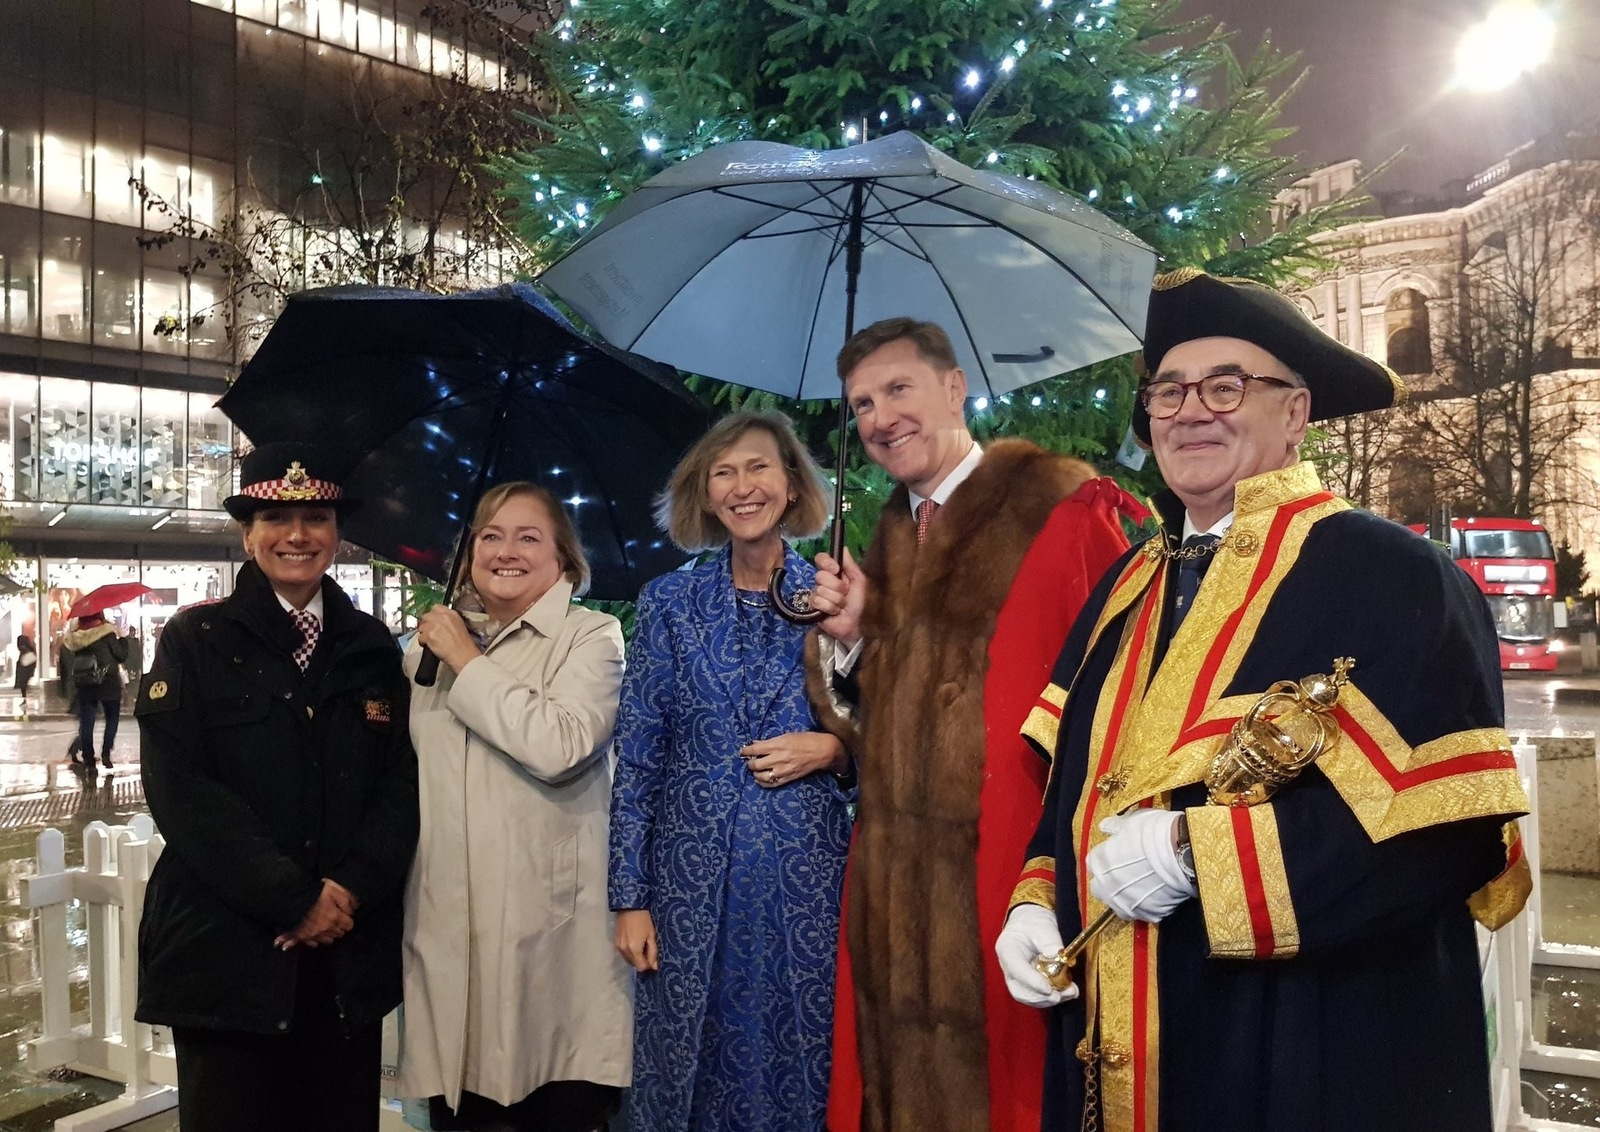 Alderman Robert Hughes-Penney at the 2018 lighting of the Christmas lights on Cheapside